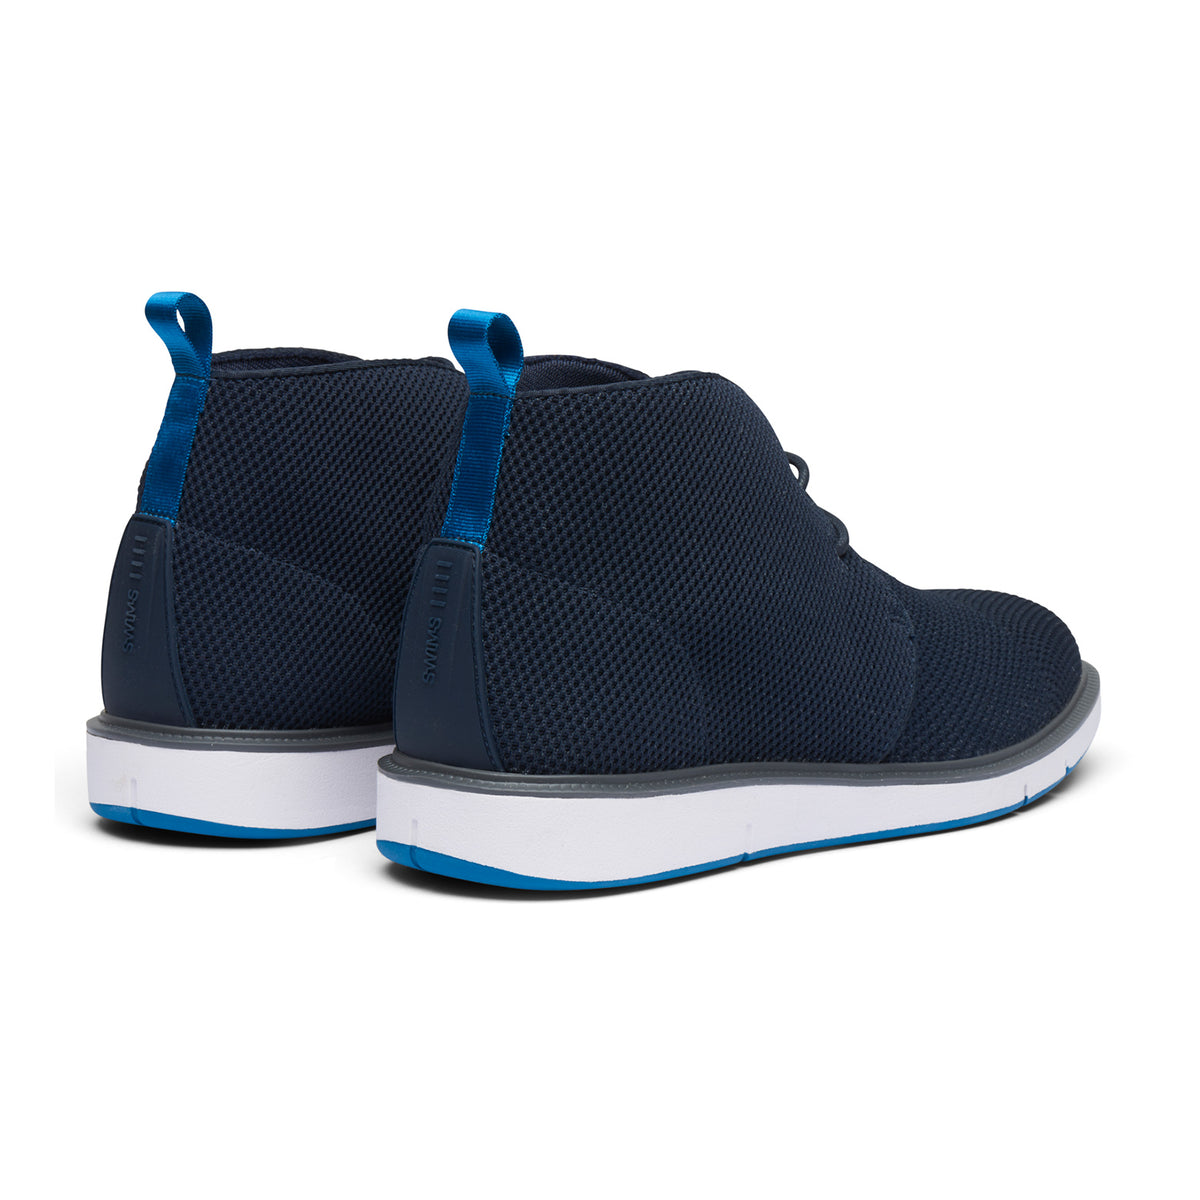 Motion Knit Chukka - background::white,variant::Navy/Seaport Blue